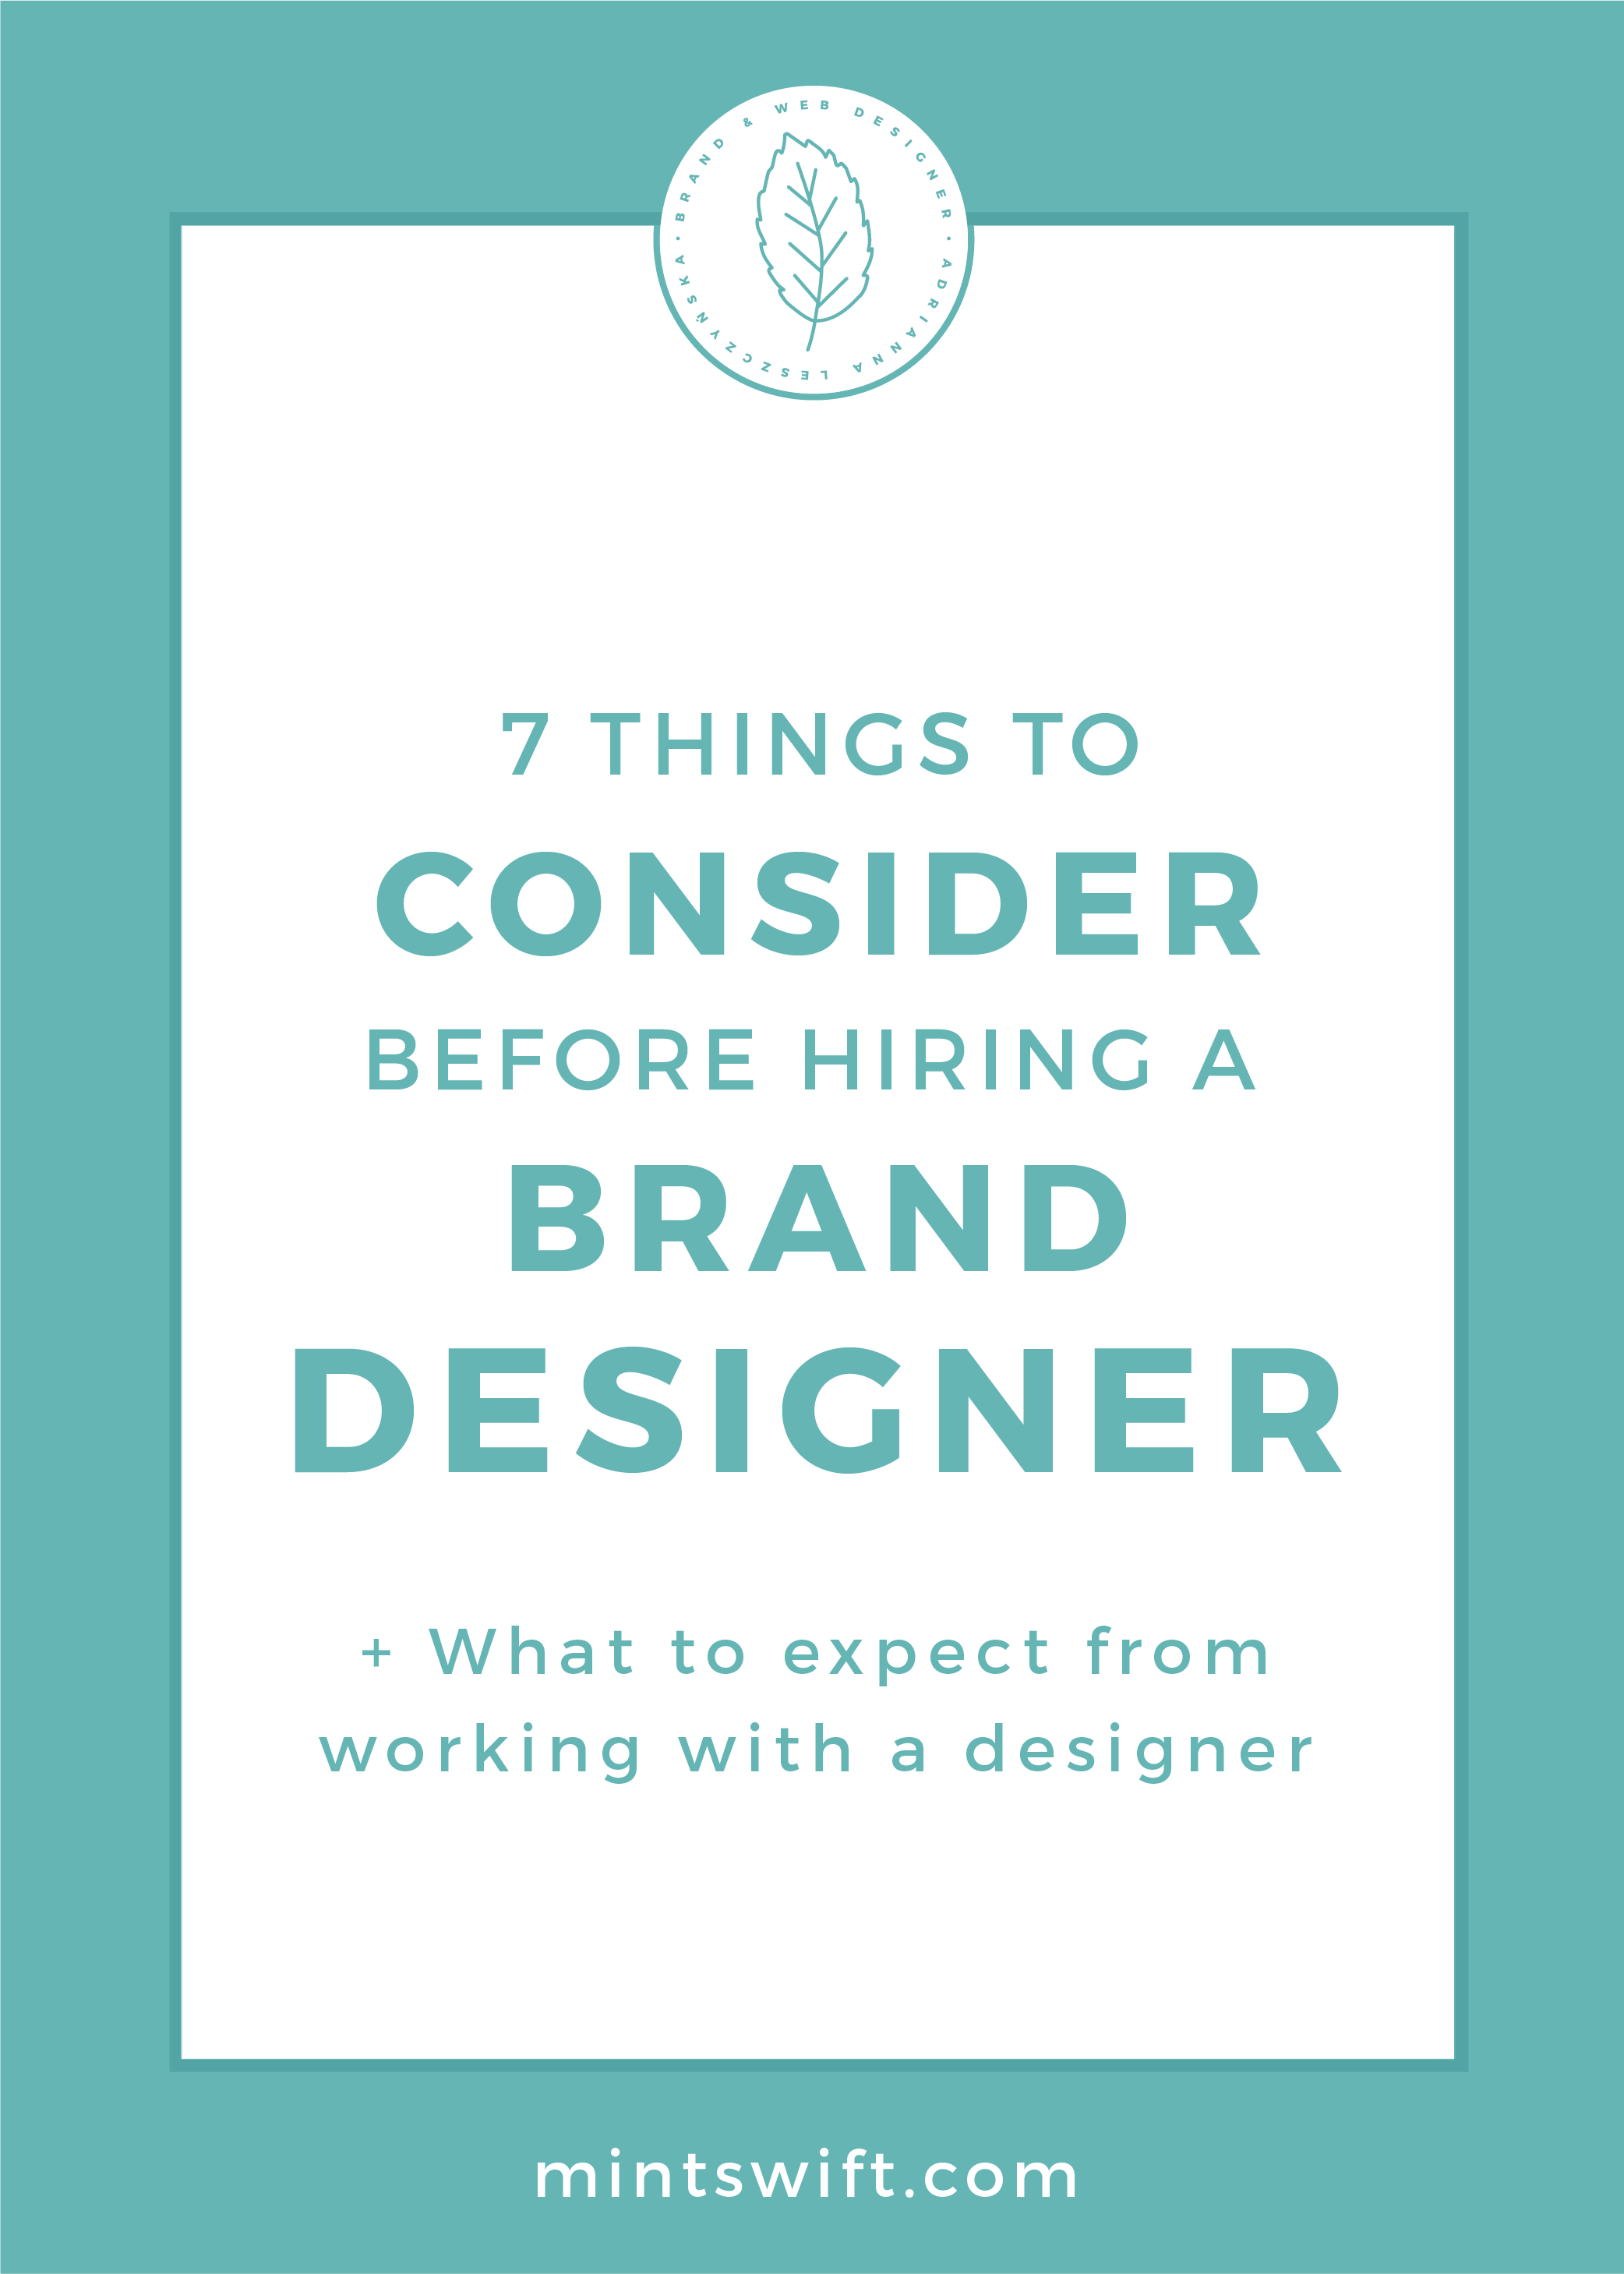 7 Things to Consider Before Hiring a Brand Designer (+ What to Expect from Working with a Designer) by MintSwift